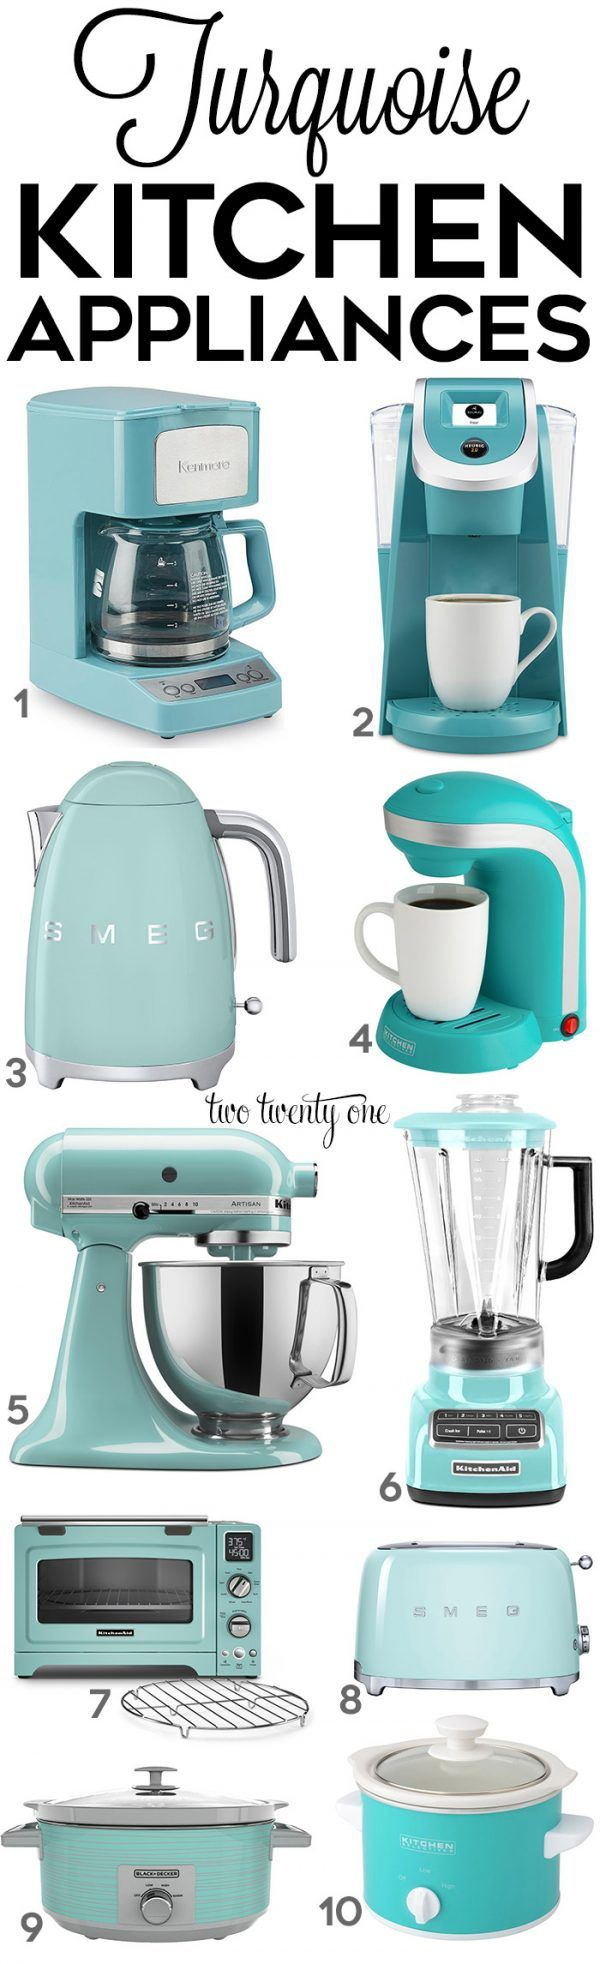 Turquoise kitchen appliances!